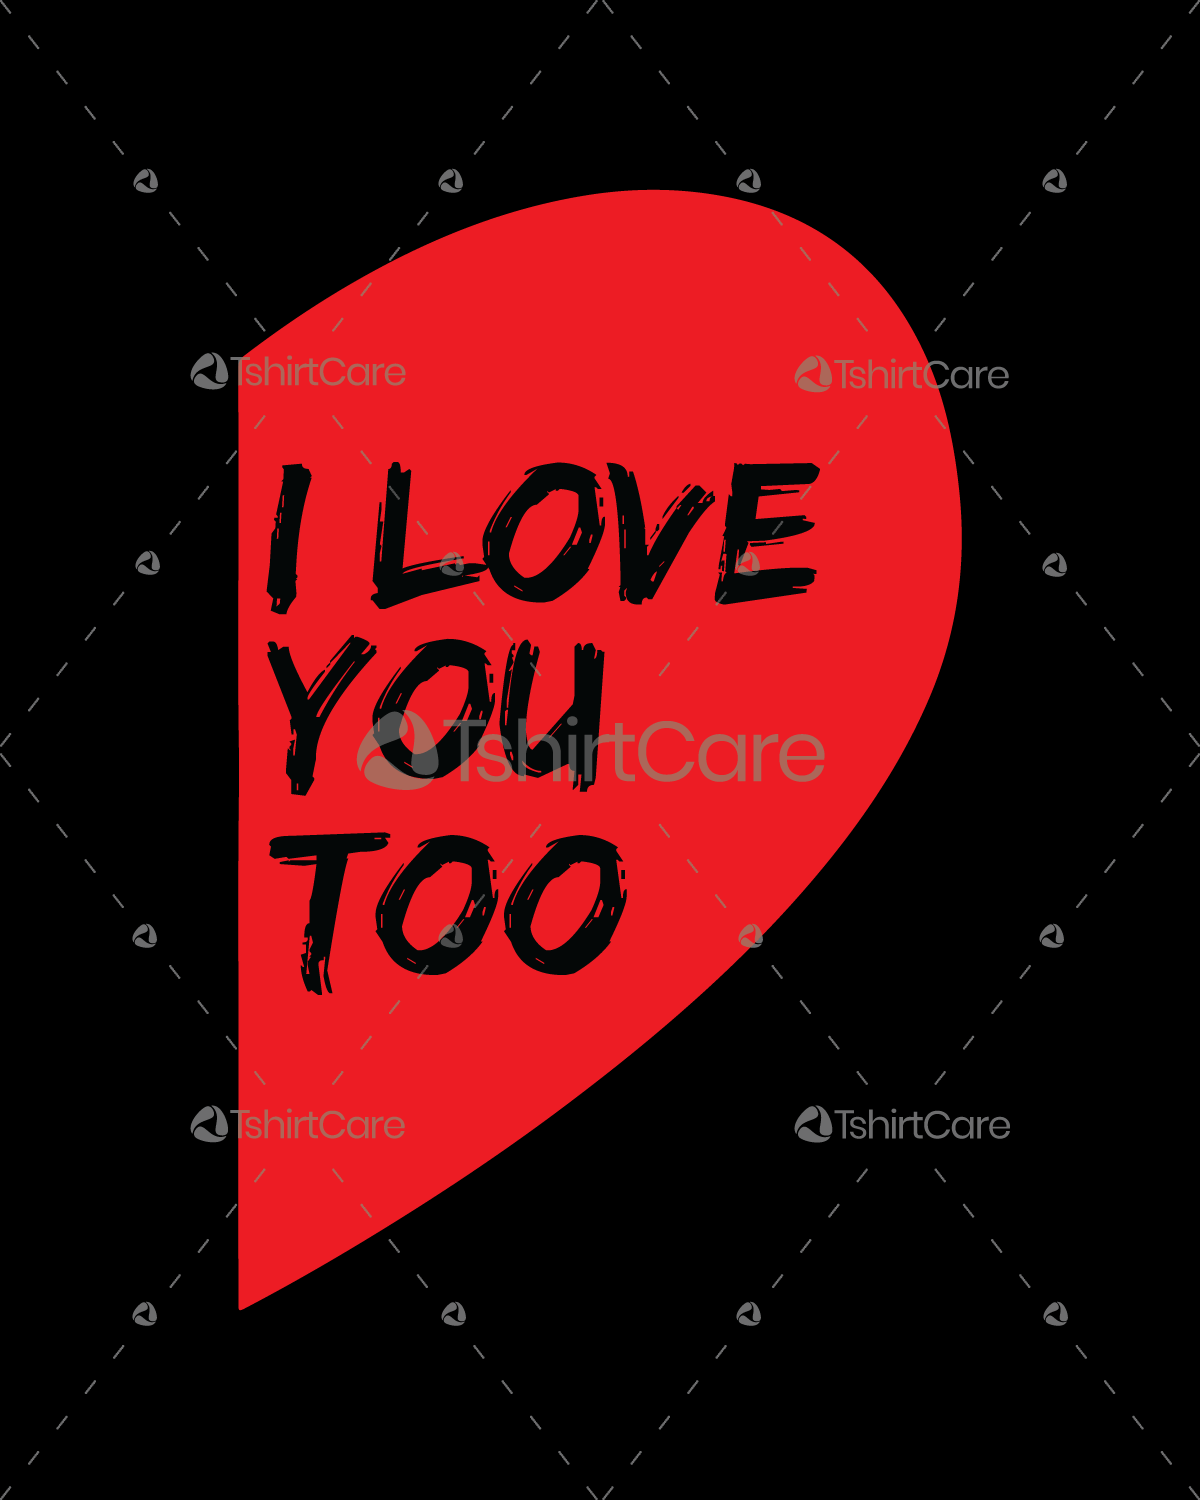 I Love You Too T Shirt Design For Valentines Day Gift Tshirtcare